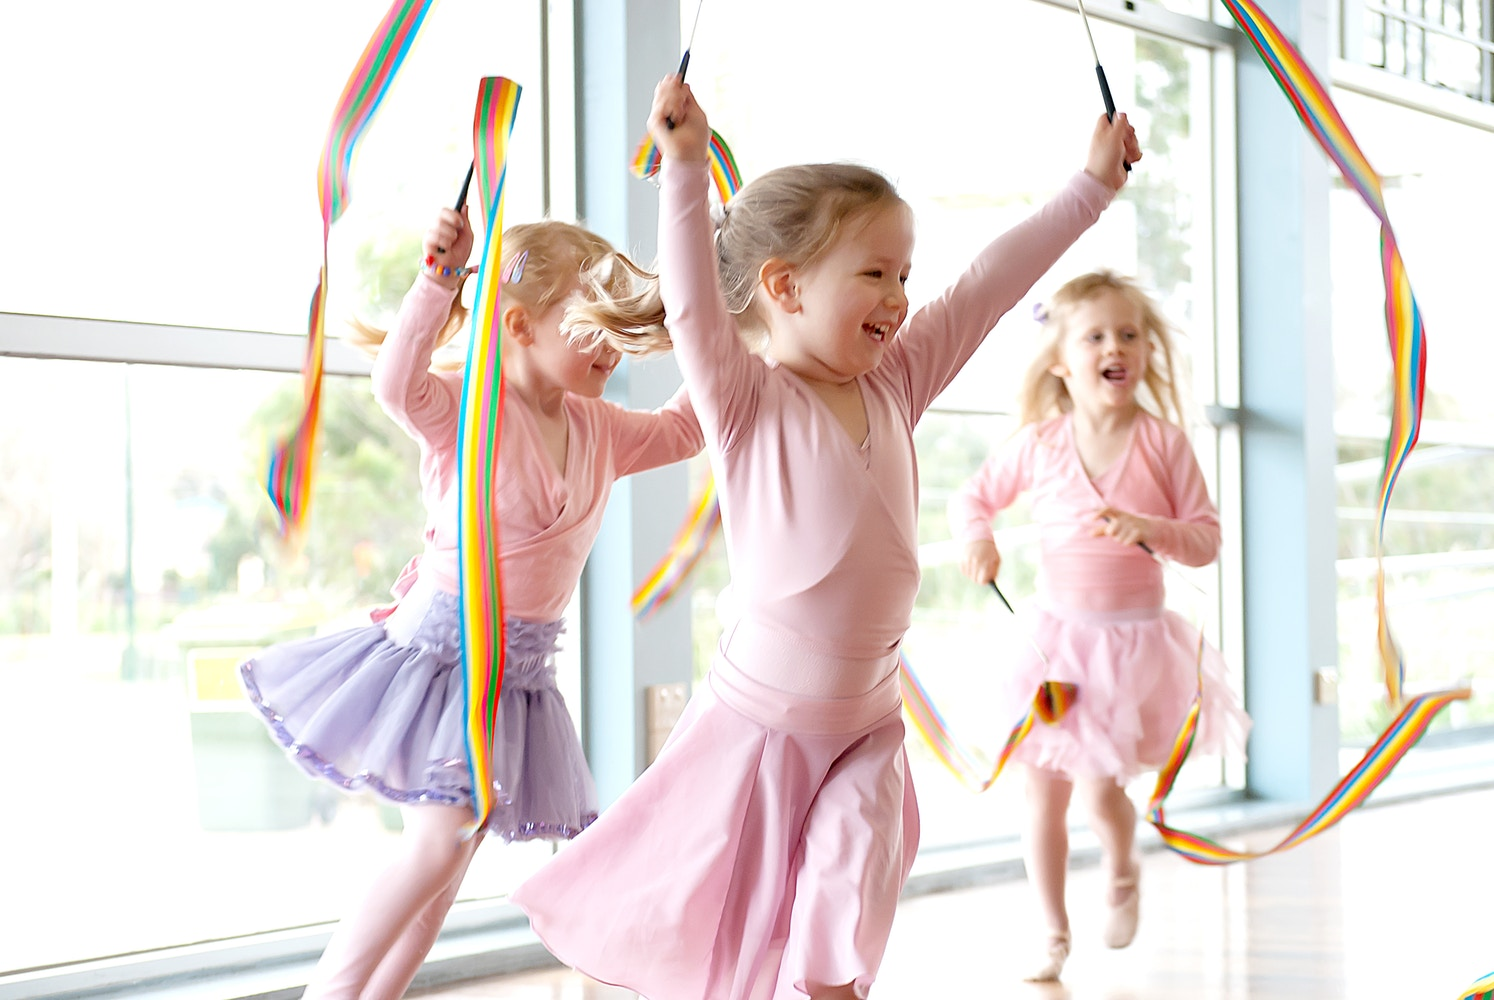 Kinderballet | Learn to Dance Preschool Ballet Program